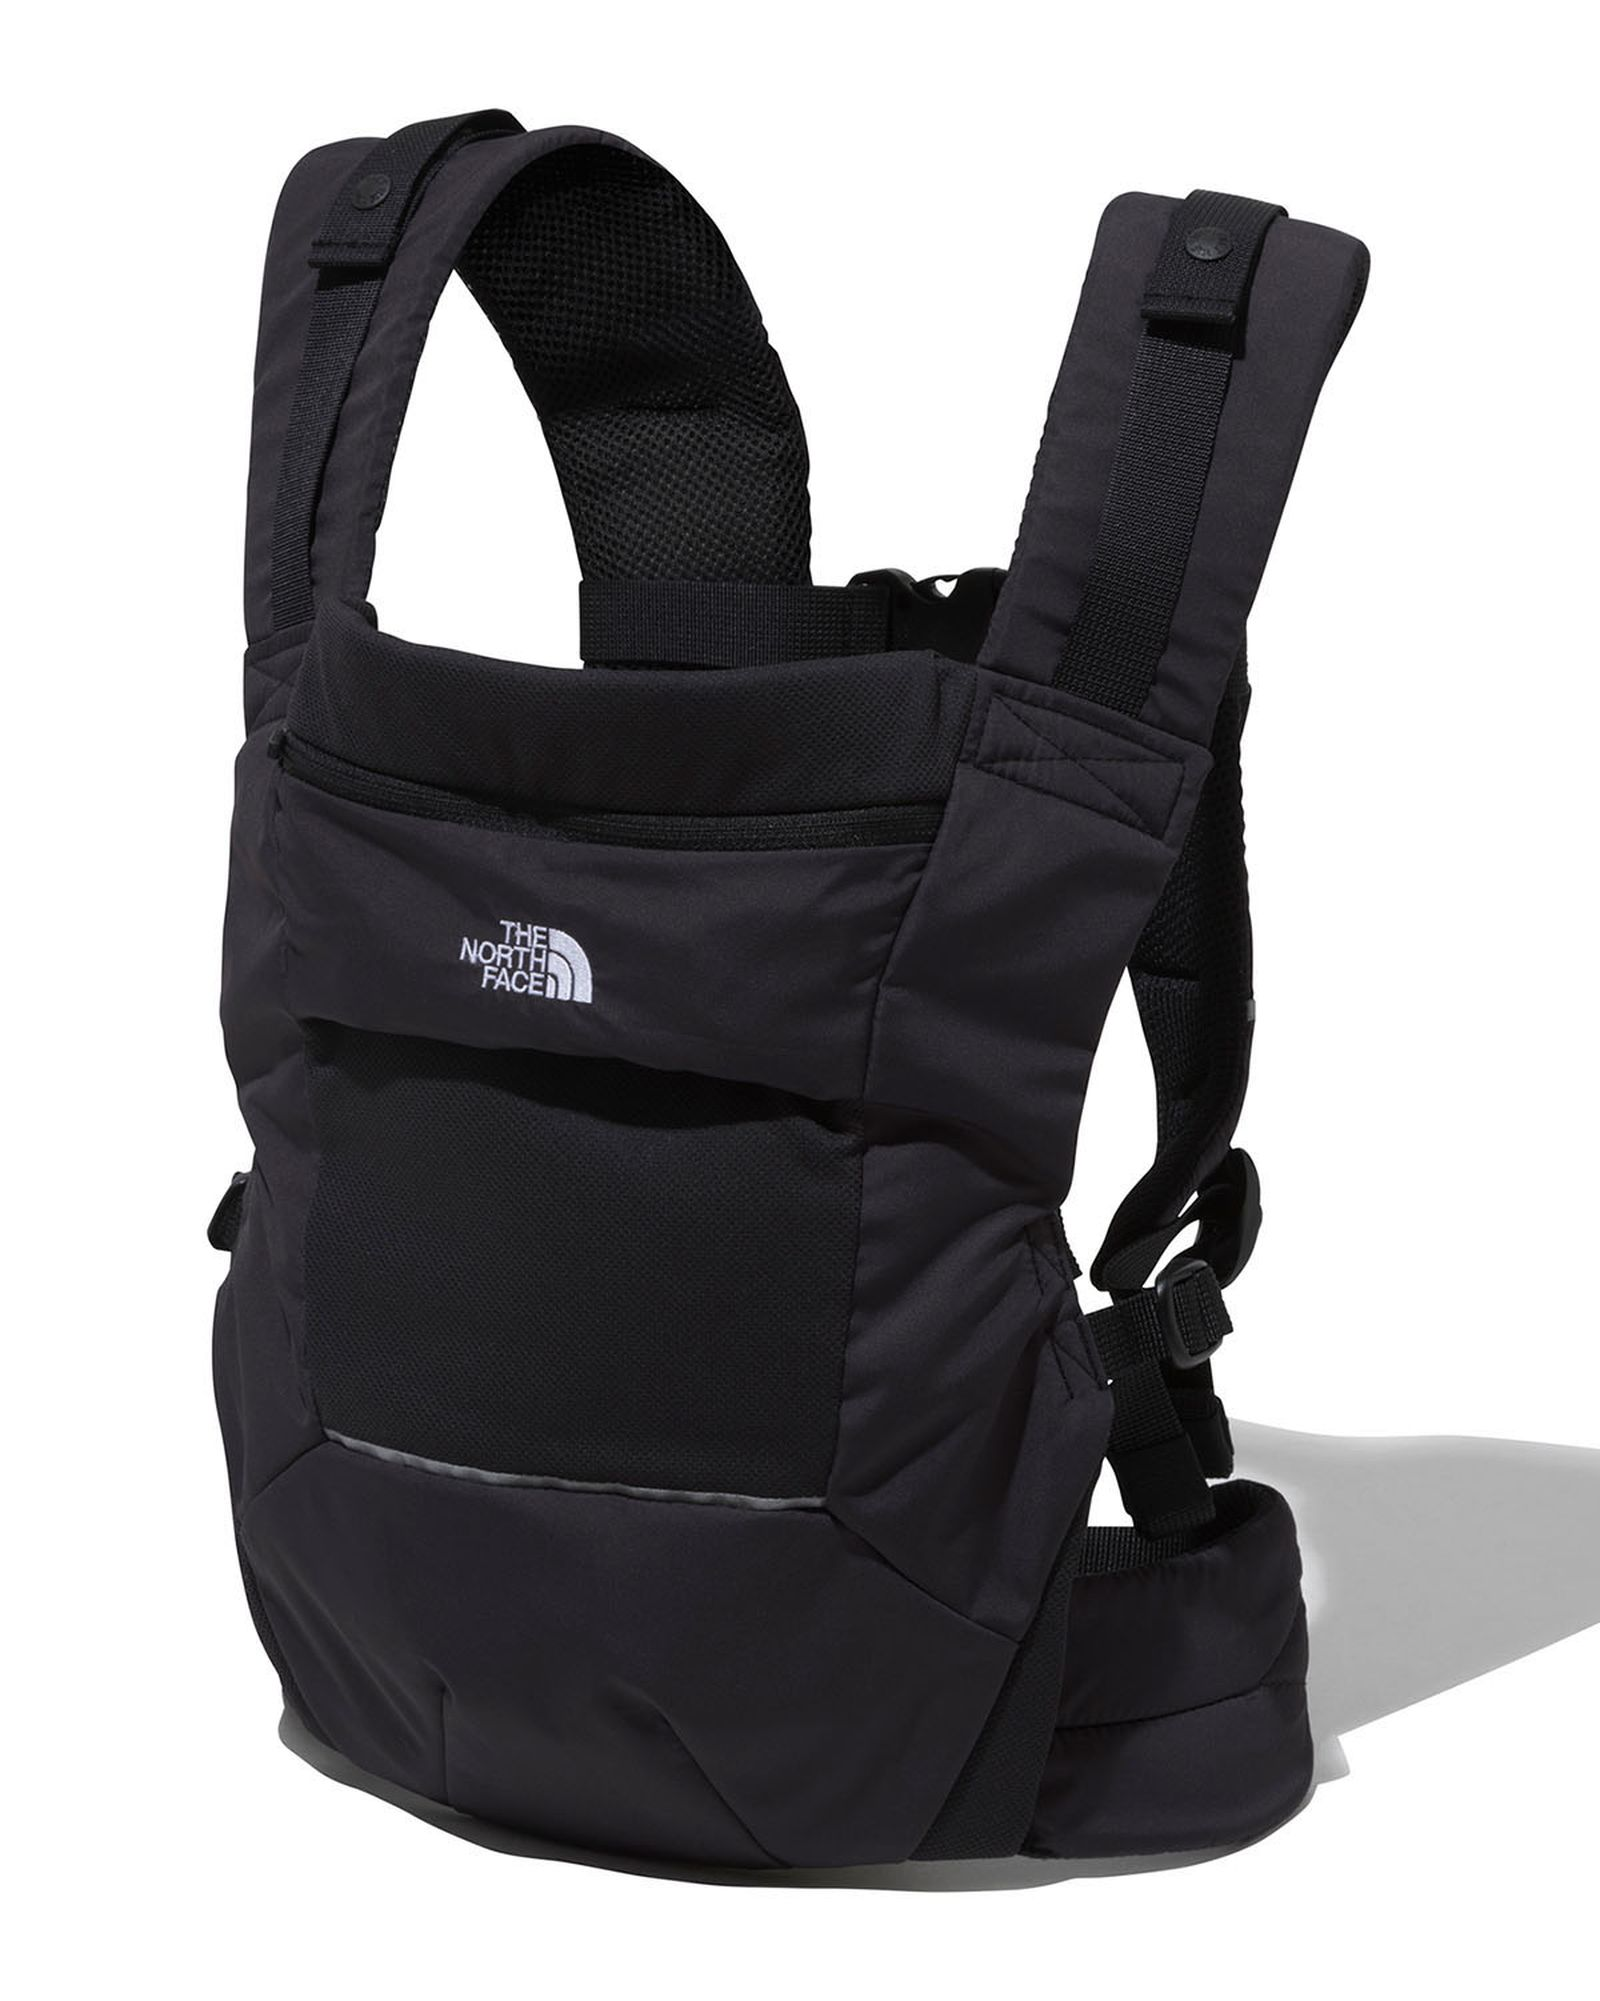 the-north-face-baby-carrier-03